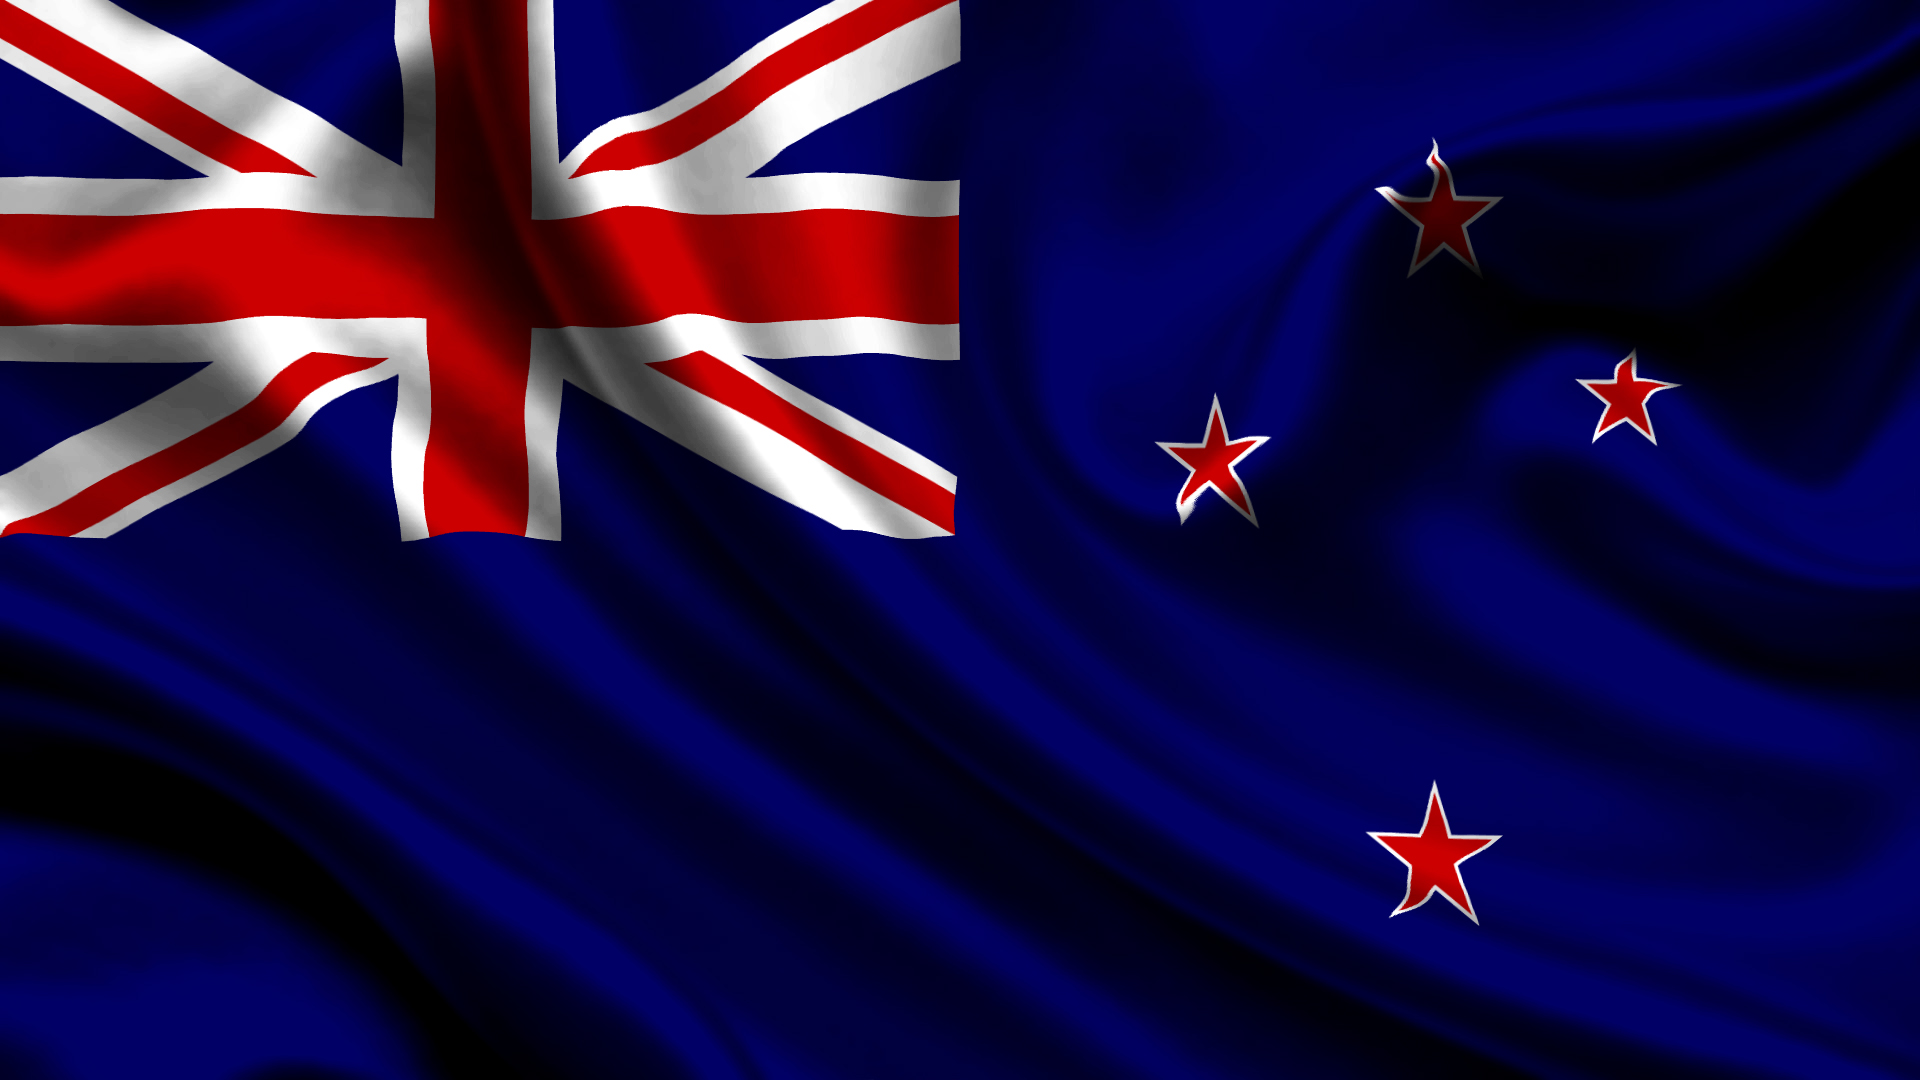 Photos new zealand flag cross 1920x1080 voltagebd Image collections